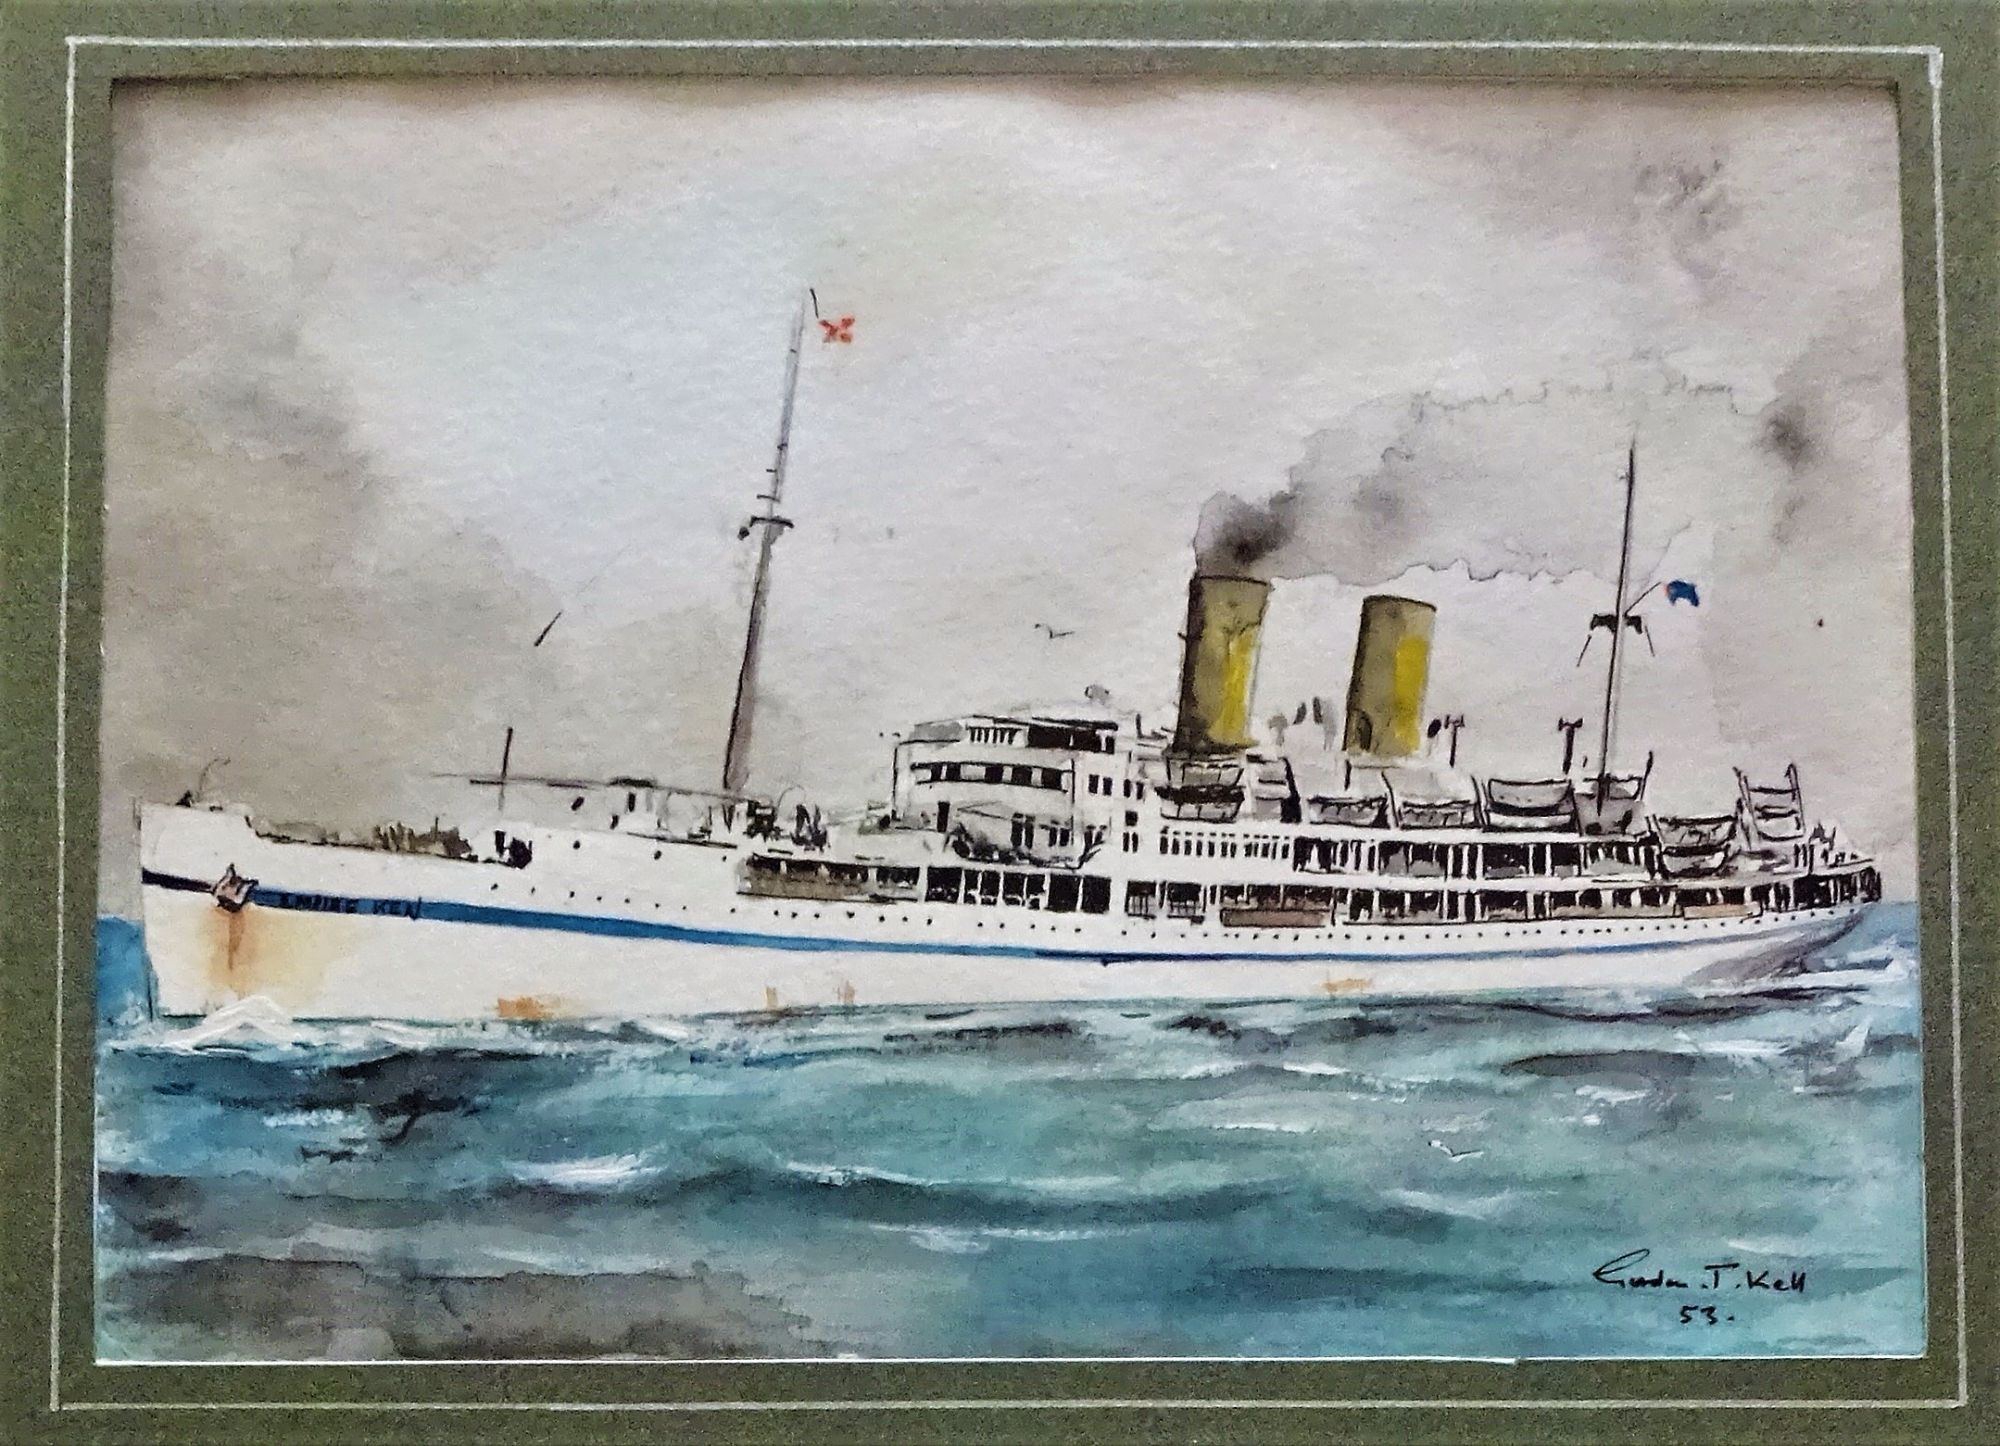 HMT Empire Ken, watercolour, signed Gordon T. Kell, 1953.